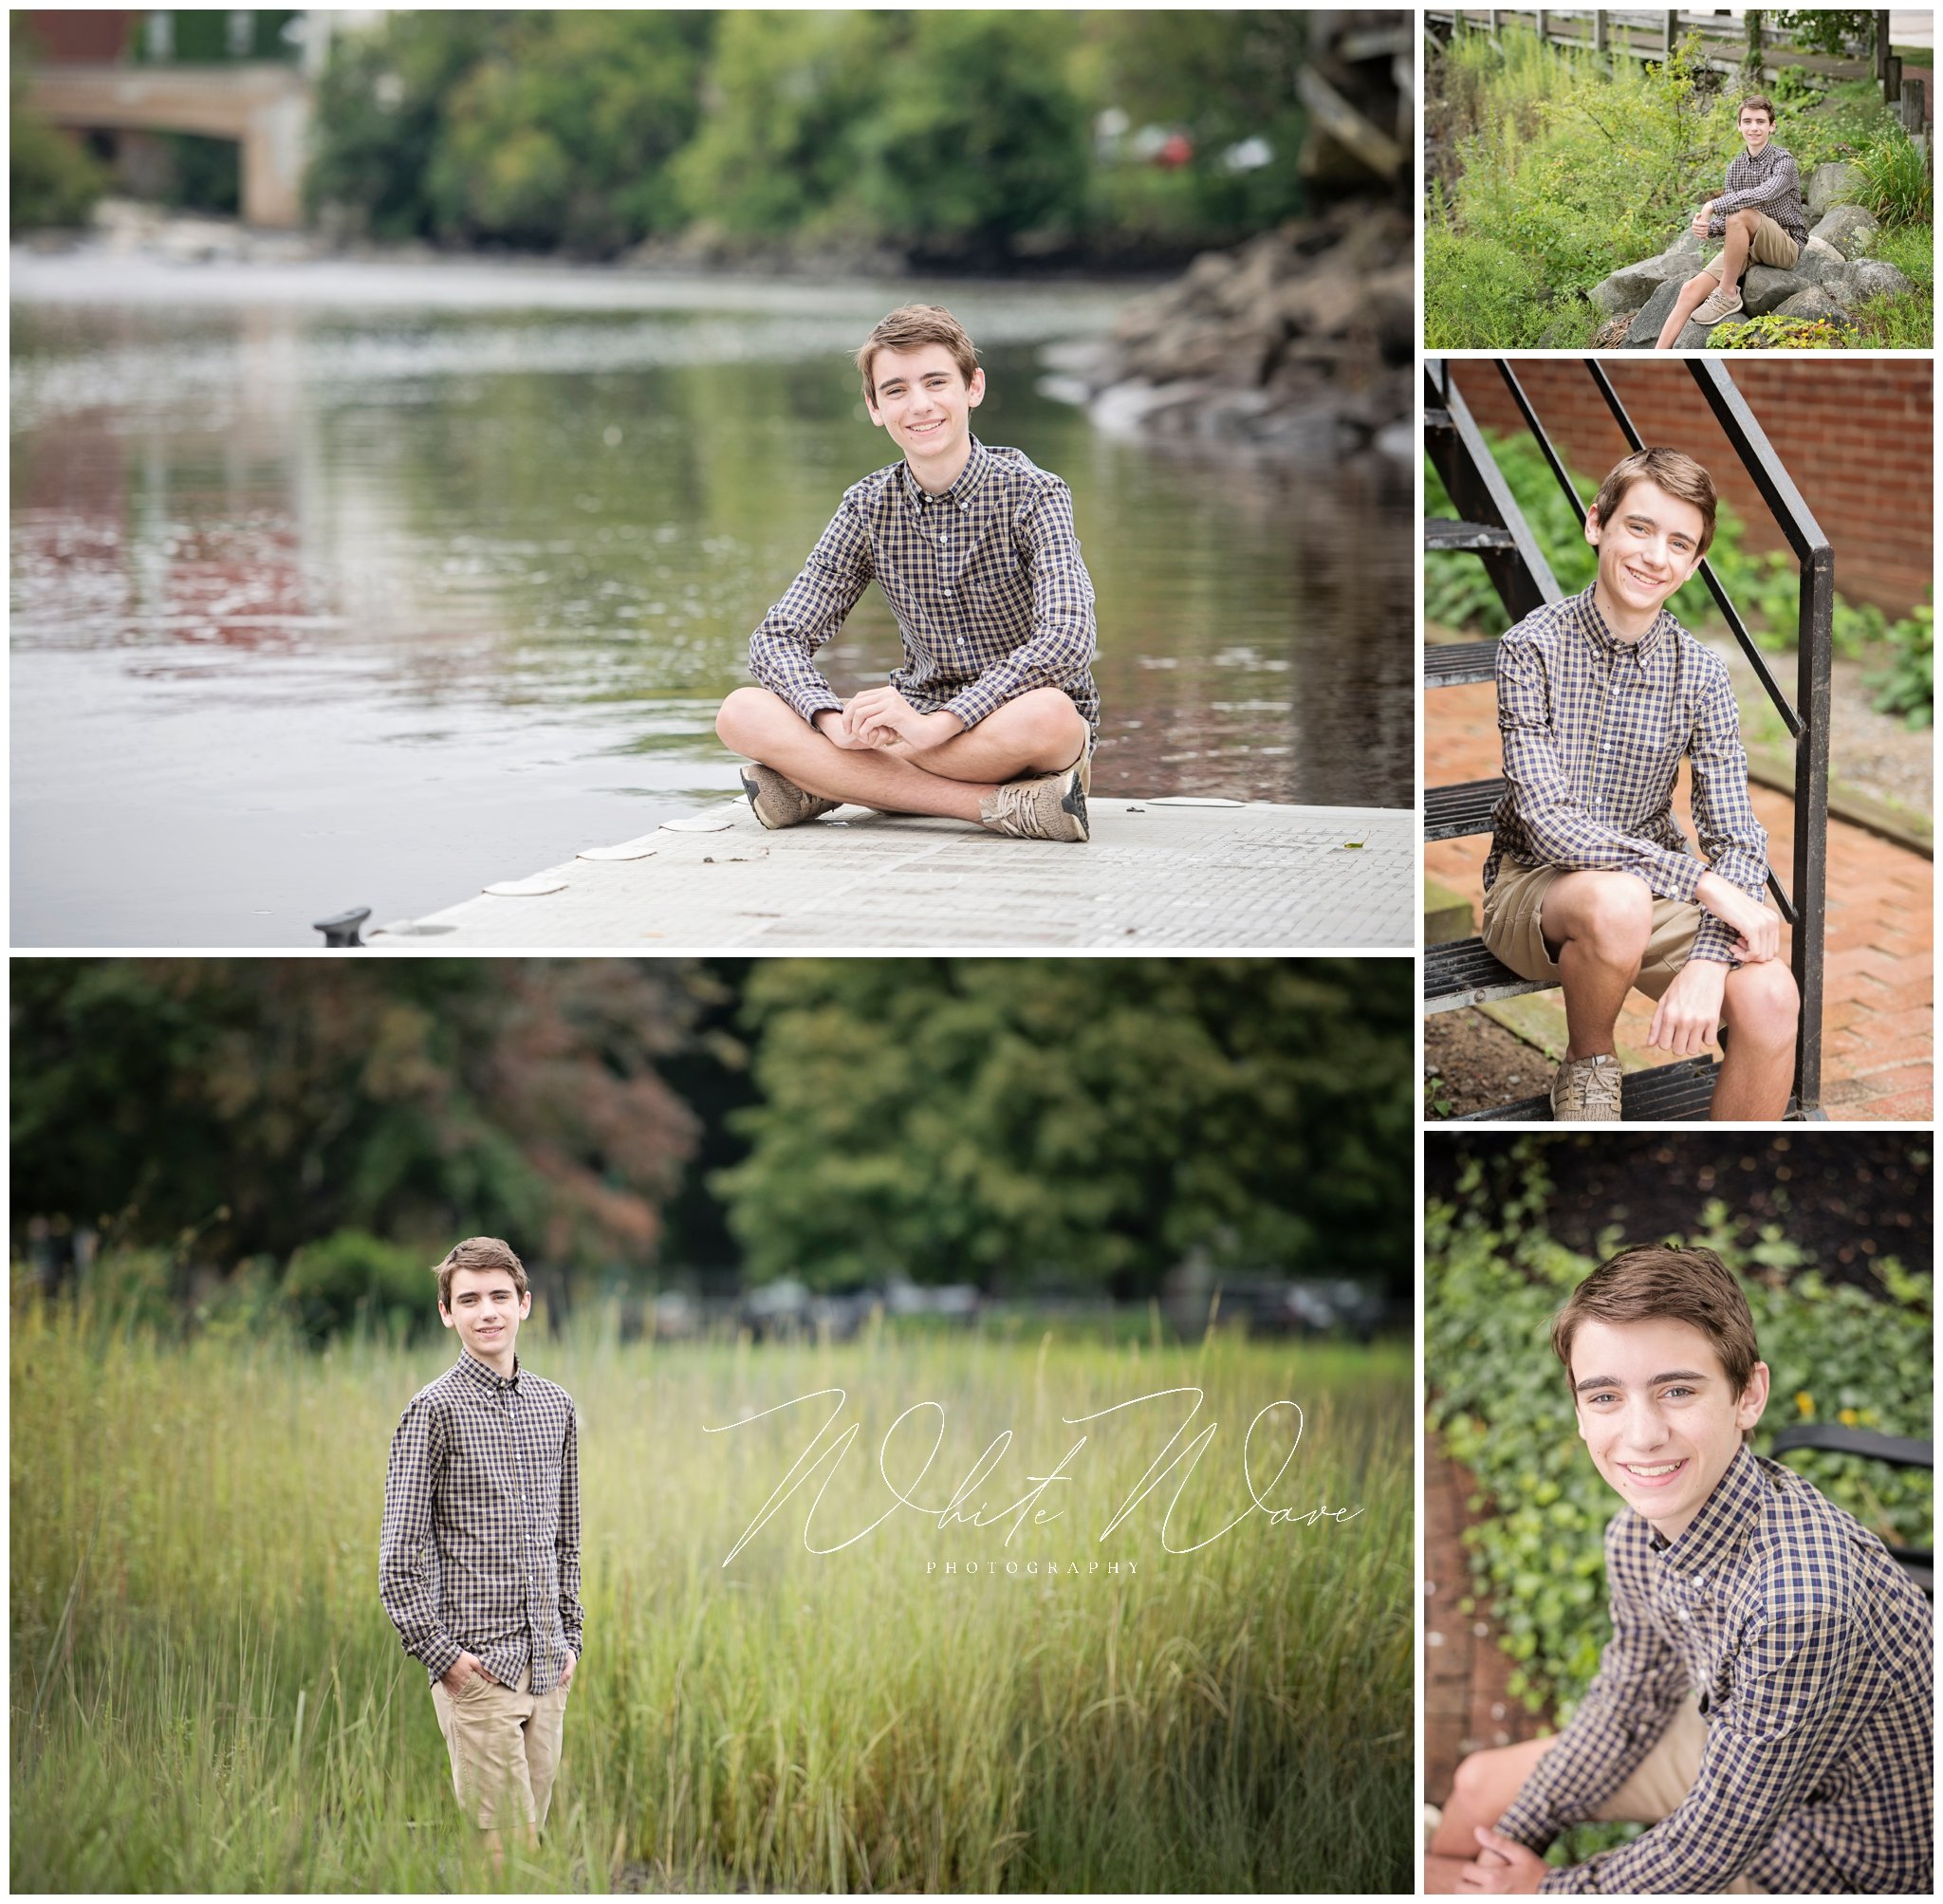 Exeter Farm is on Photographer Jennie Bishop's list of top places for senior photo sessions